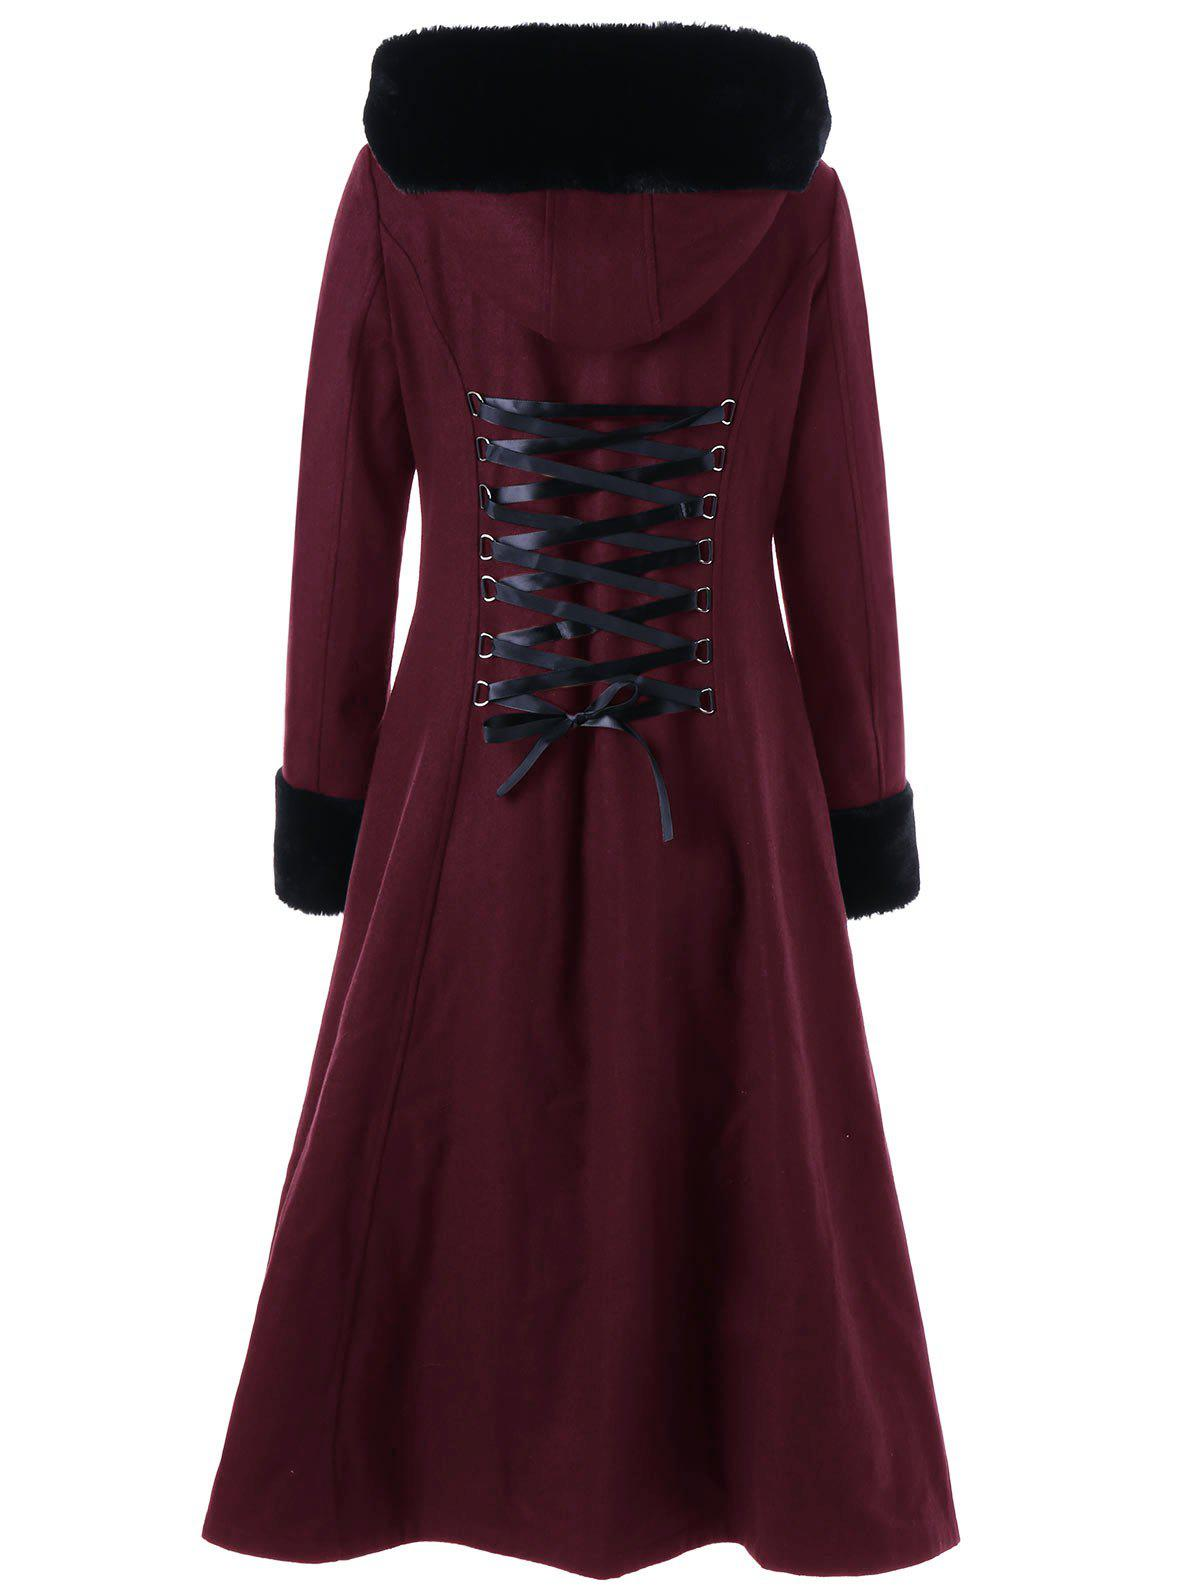 Hooded Longline Lace Up CoatWOMEN<br><br>Size: 2XL; Color: WINE RED; Clothes Type: Wool &amp; Blends; Material: Polyester; Type: Slim; Shirt Length: Long; Sleeve Length: Full; Collar: Hooded; Pattern Type: Solid; Style: Gothic; Season: Fall,Spring,Winter; Weight: 1.2450kg; Package Contents: 1 x Coat;